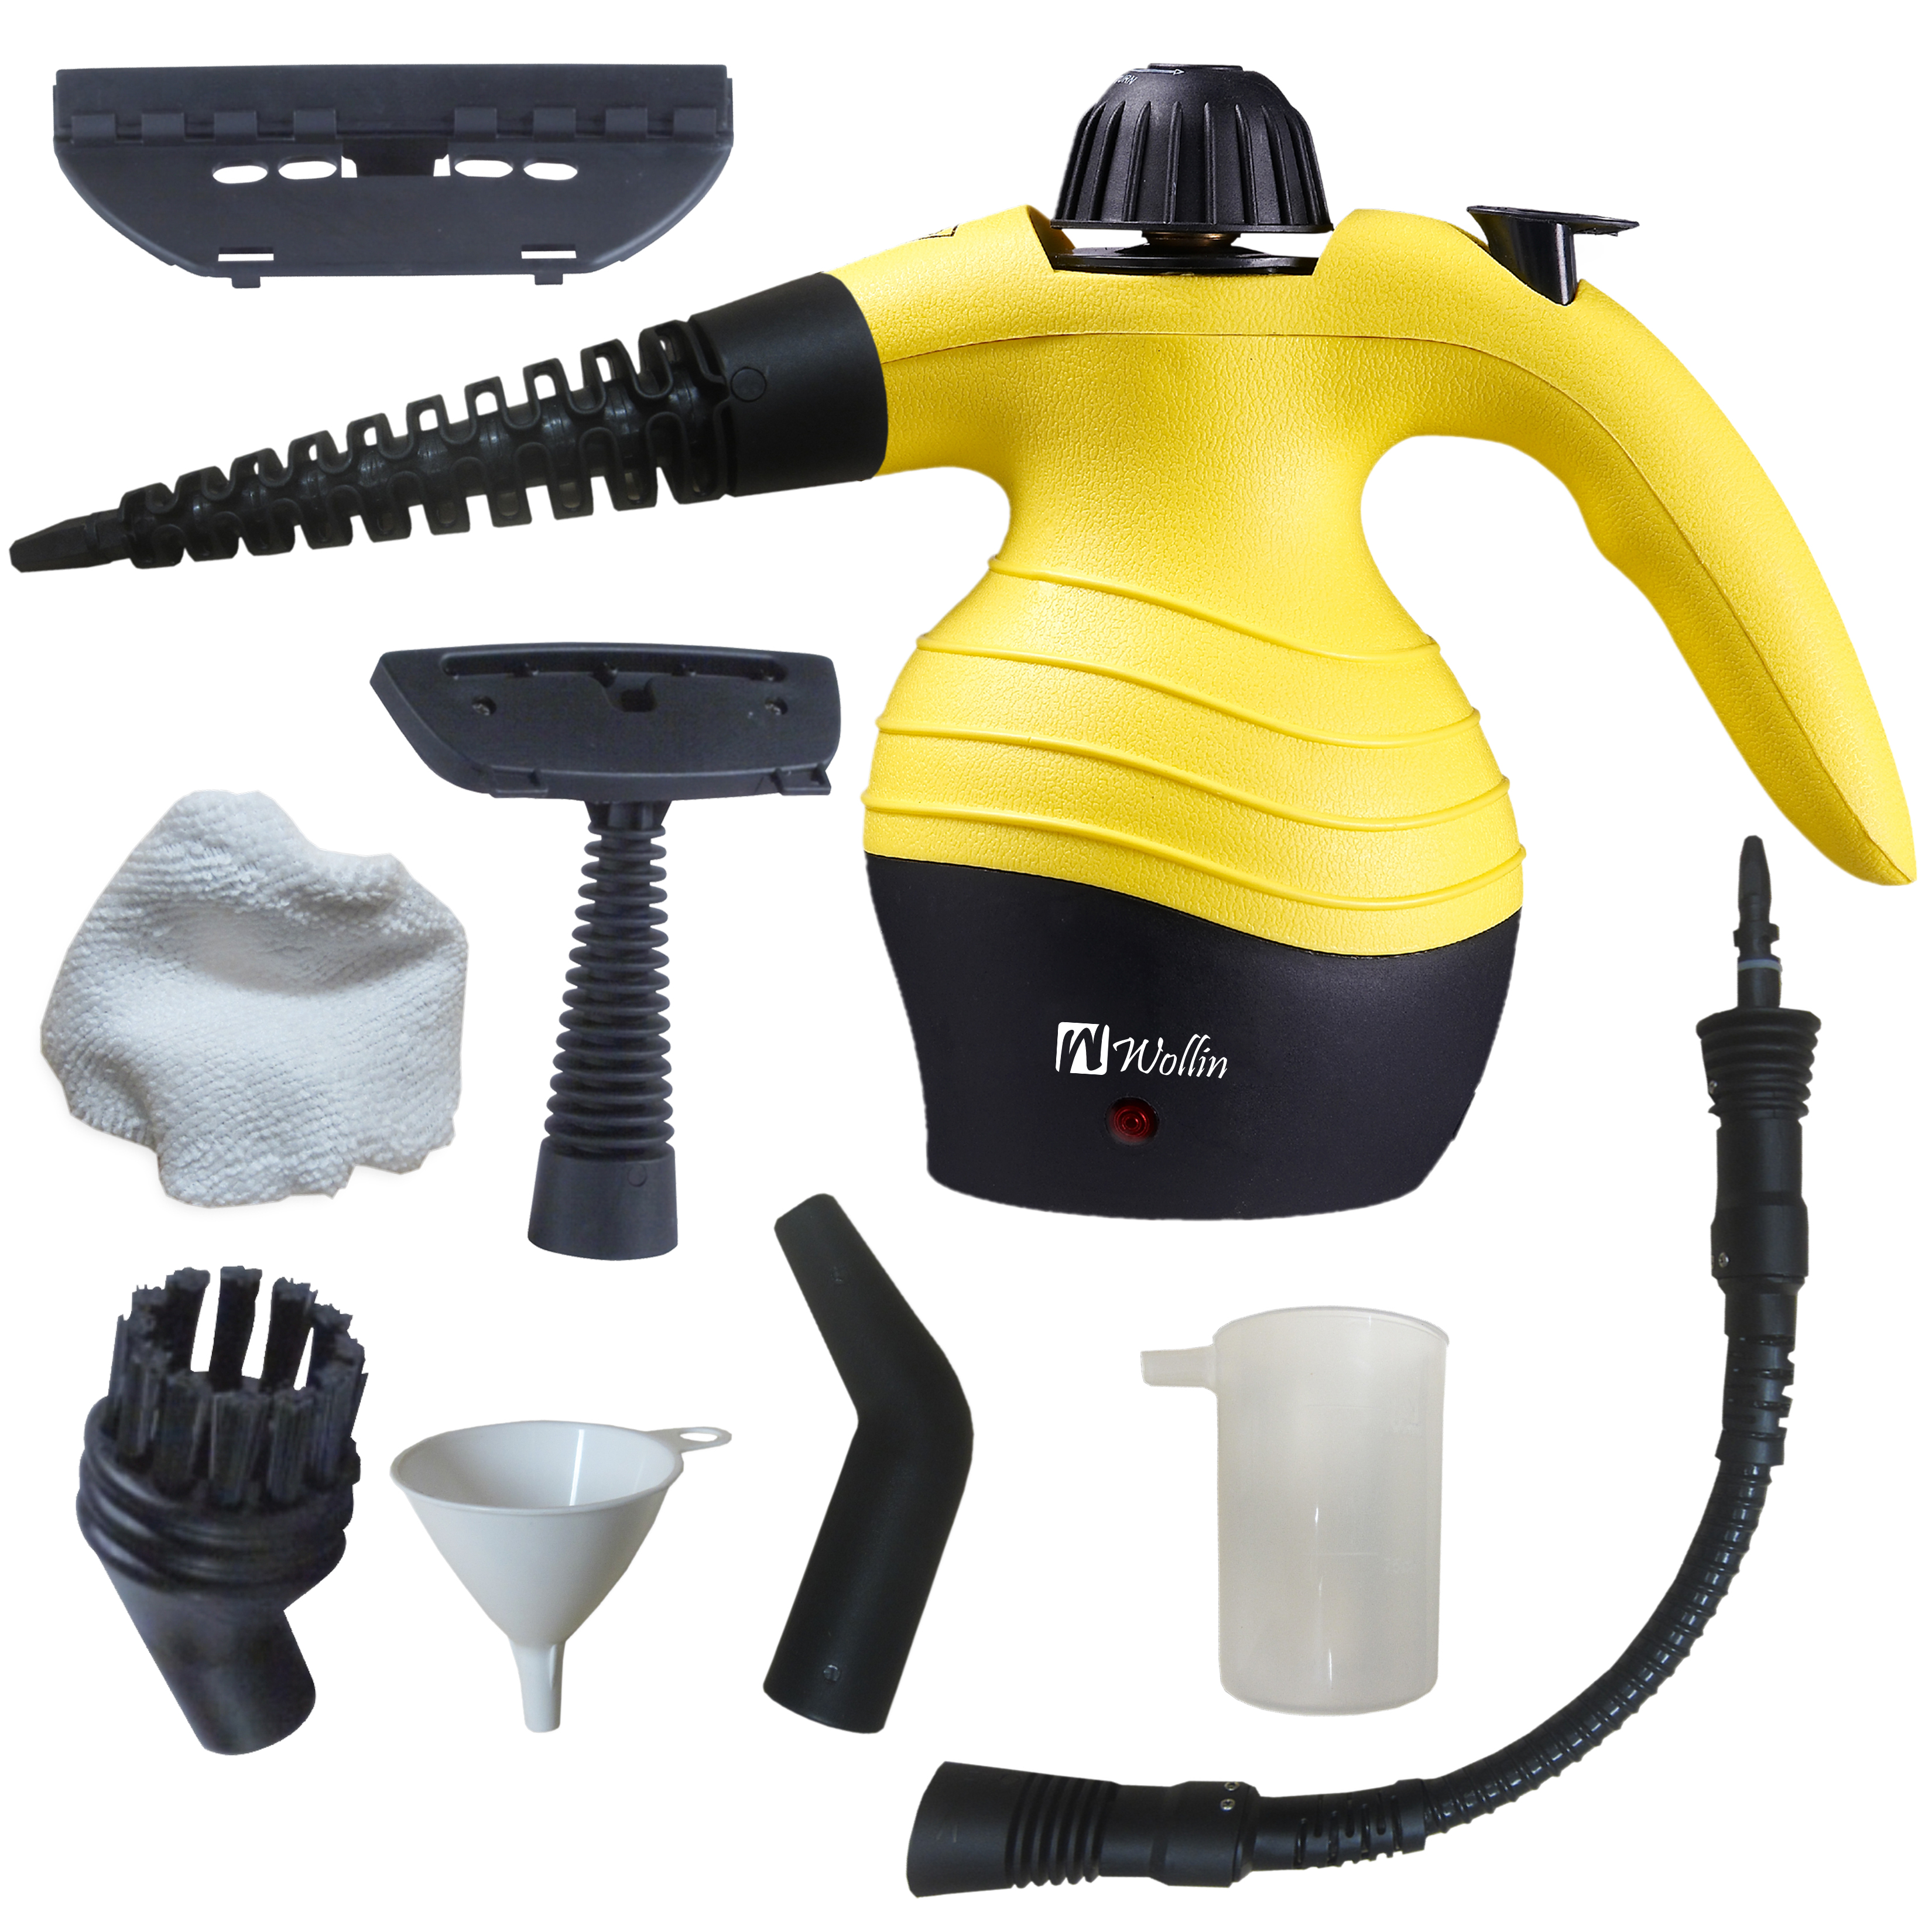 Handheld Steam Cleaner | Multi Purpose For Cleaning, Stai...